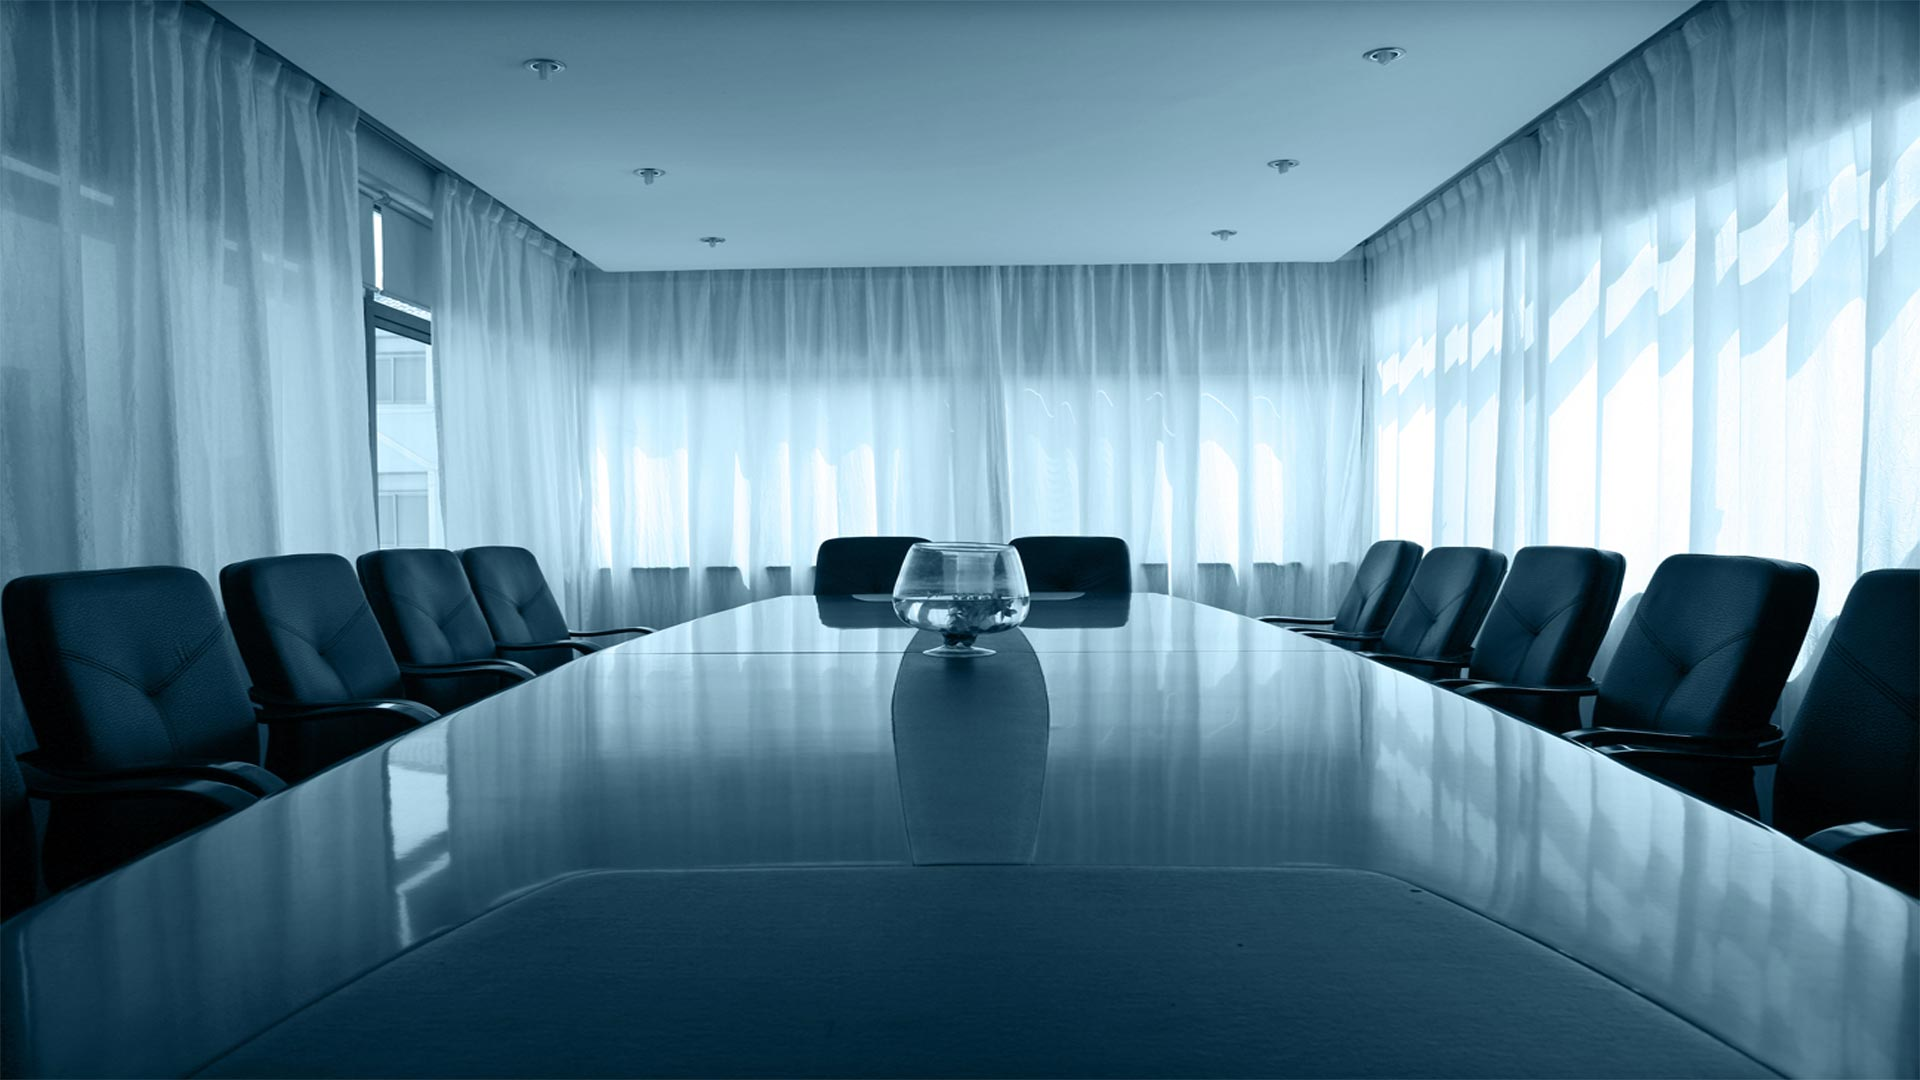 consider when investing in a business archives virginia corporate boardroom meeting images free corporate boardroom names